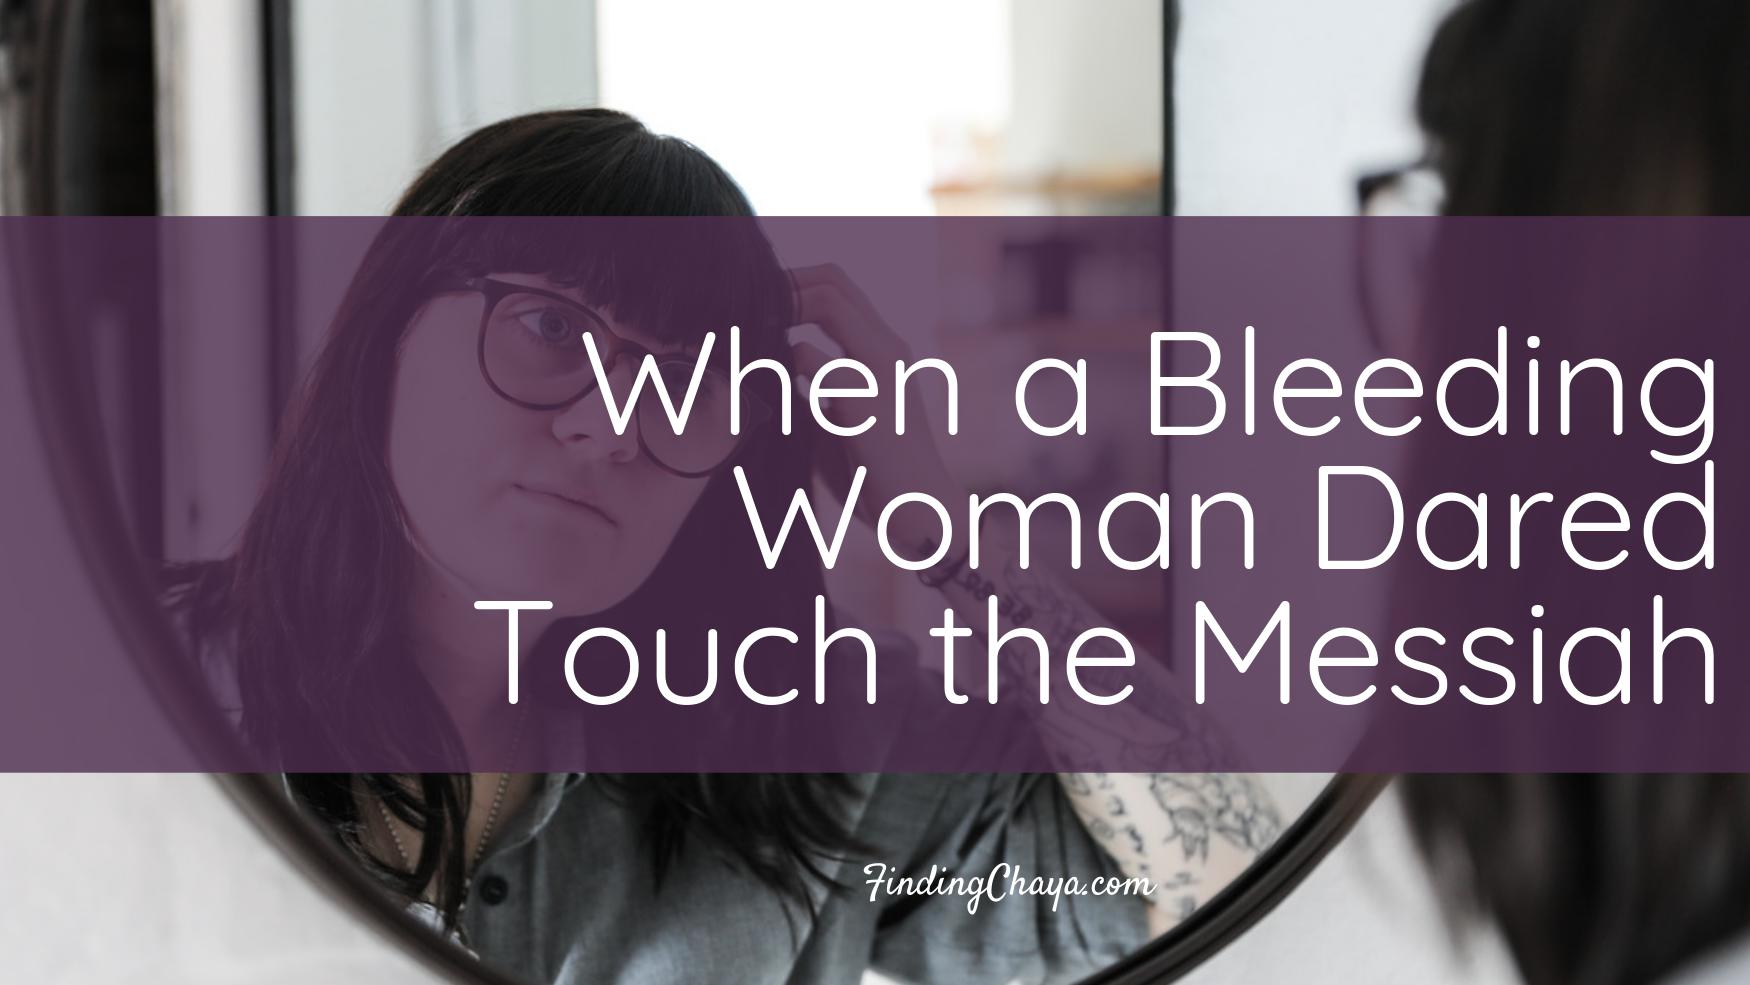 When a Bleeding Woman Dared Touch the Messiah || Women, Periods, and Jesus